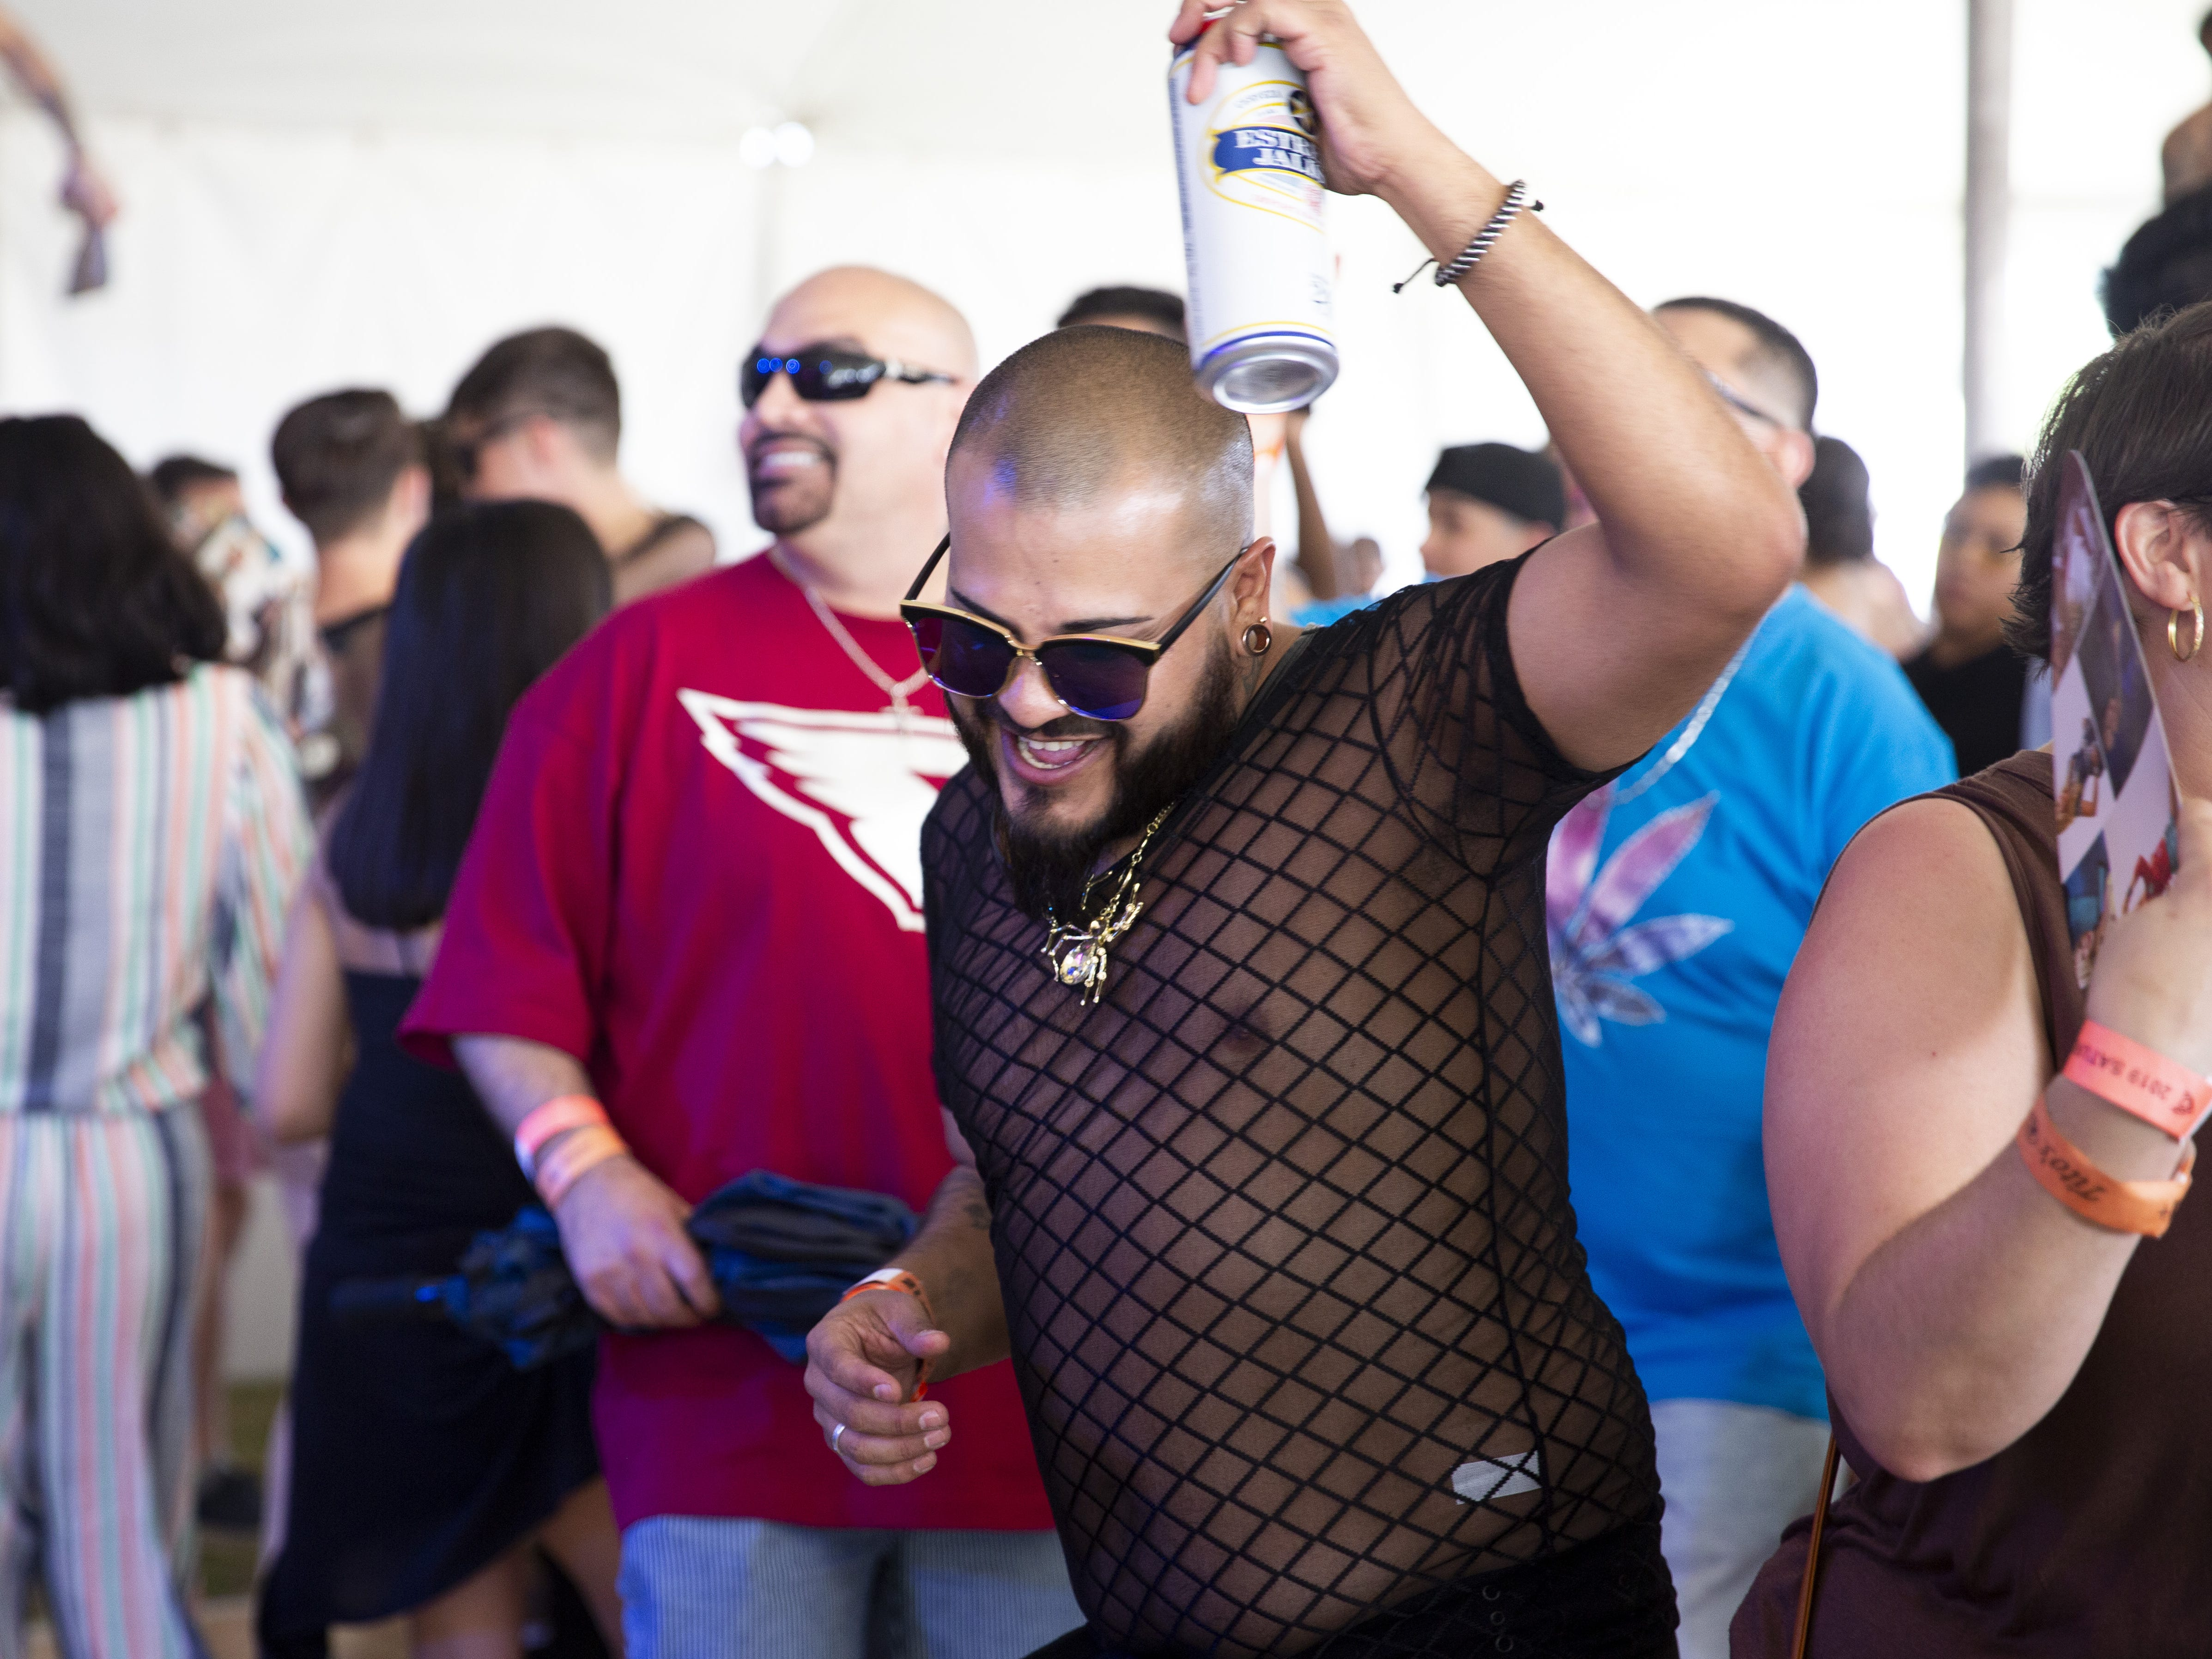 The new Latin stage was popular a popular dance floor during Phoenix Pride at Steele Indian School Park on Saturday, April 6, 2019.